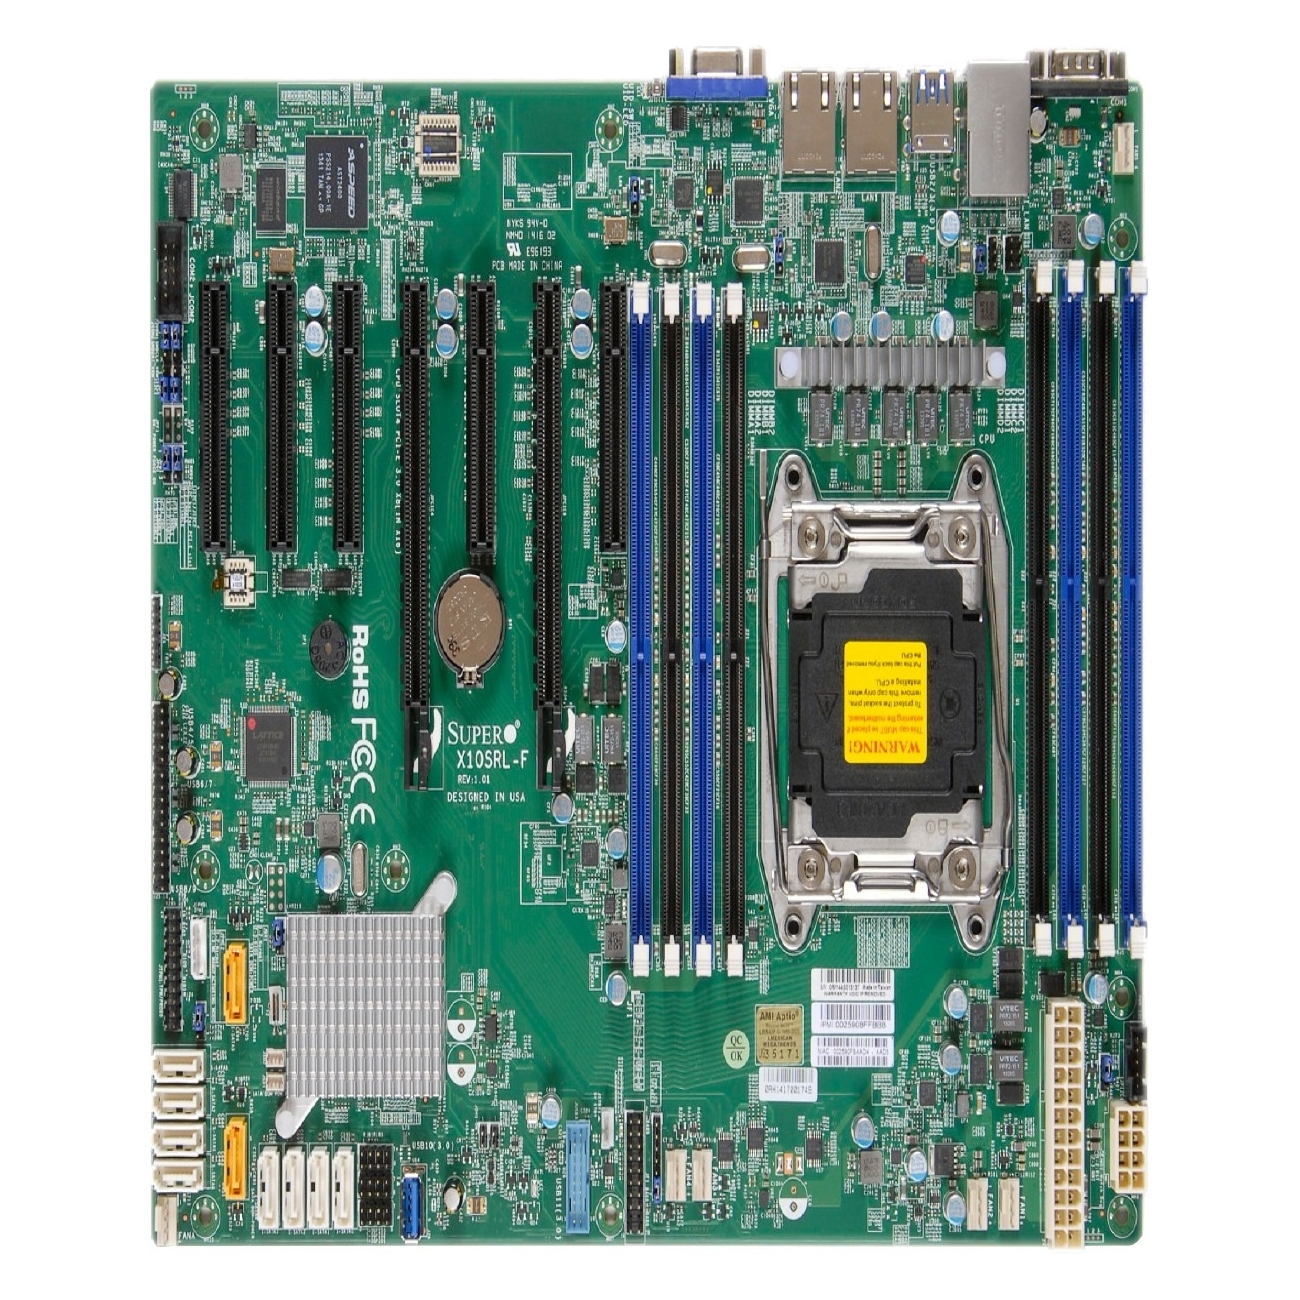 Super Micro X10sri-f Server Motherboard - Intel C612 Chip...